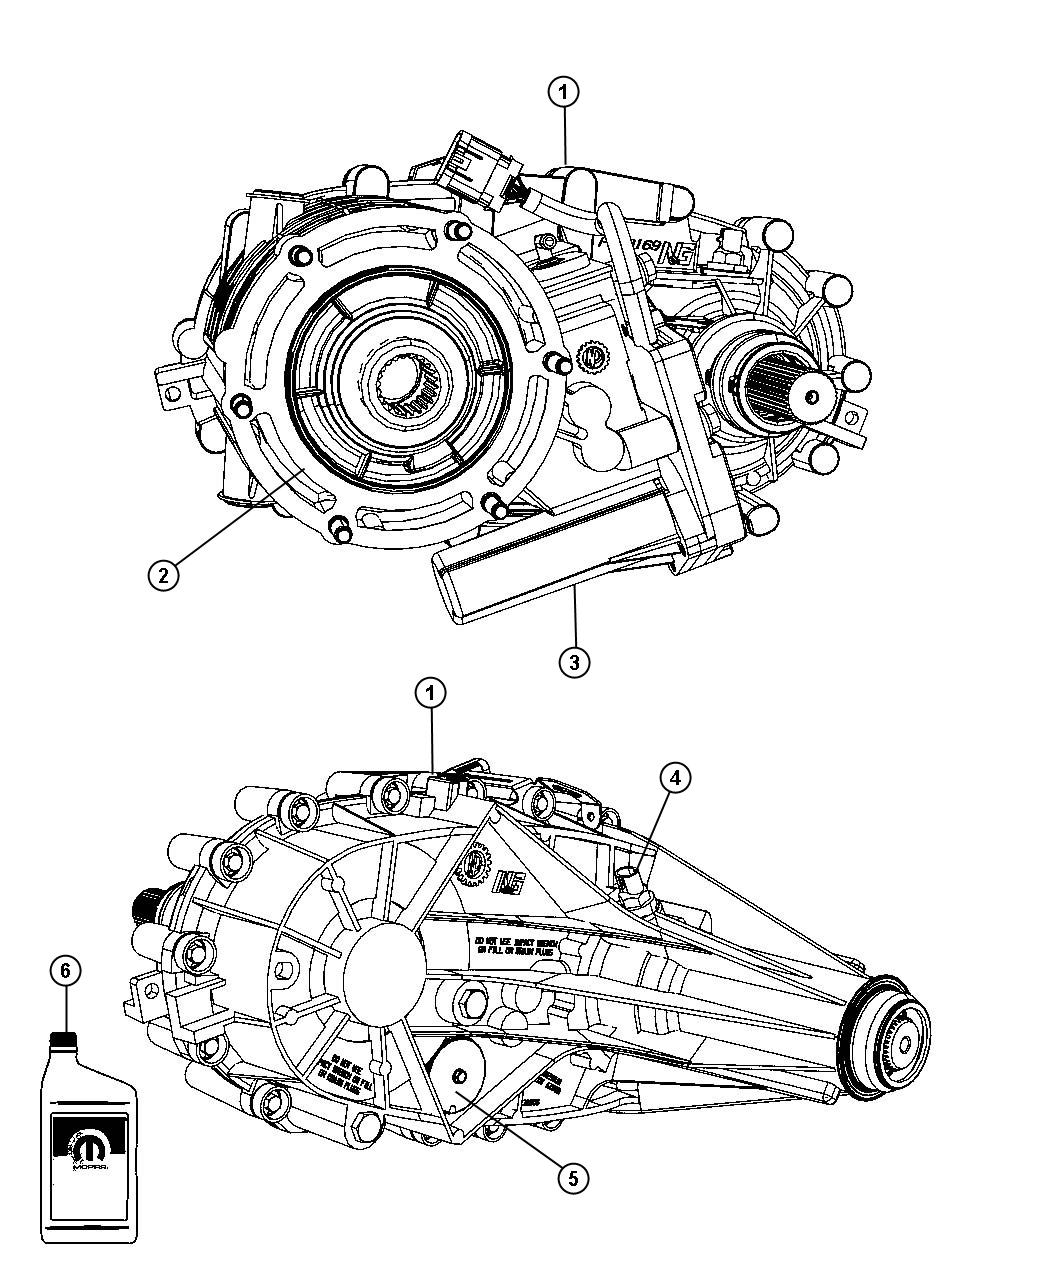 2009 Dodge Ram 1500 Transfer Case Assembly And